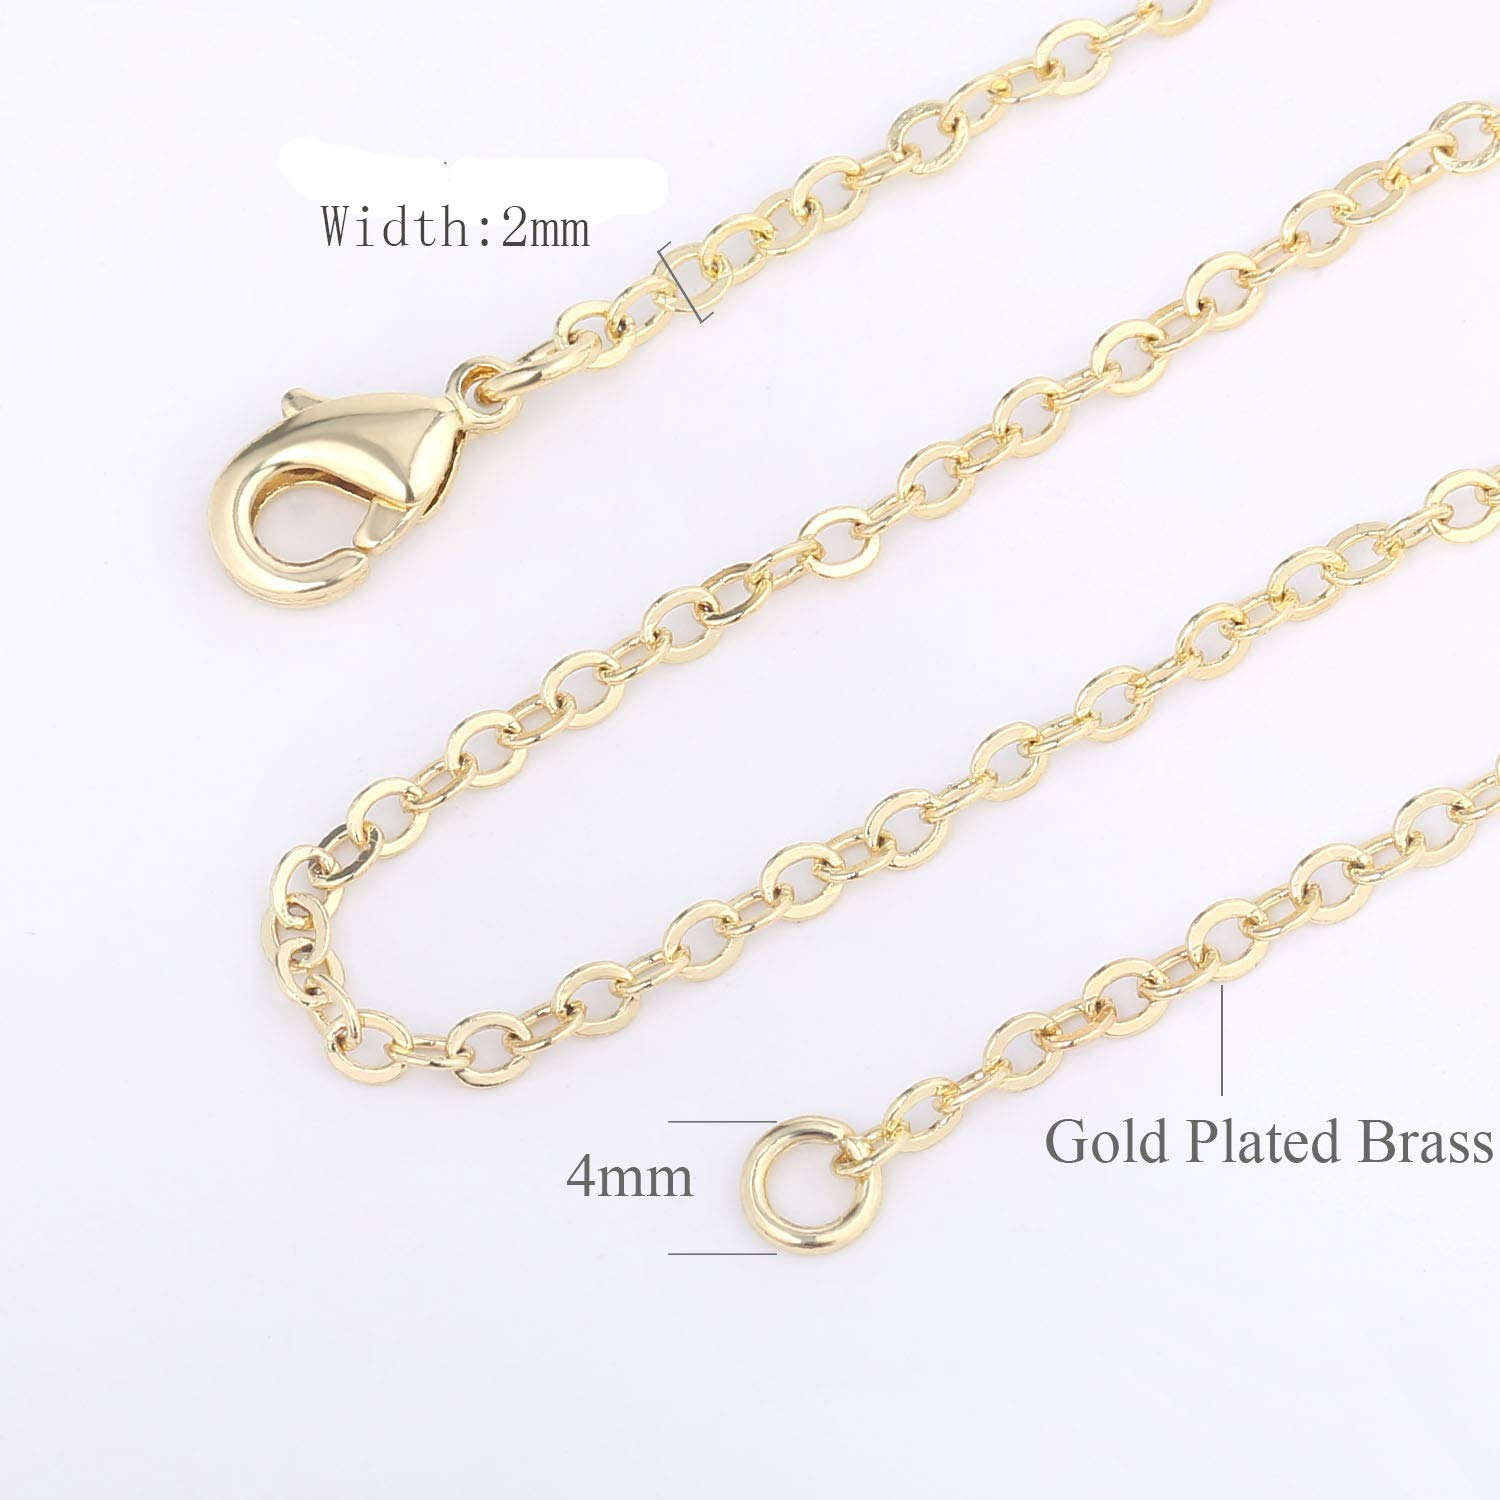 18 Inch Wholesale 12 PCS Gold Plated Over Solid Brass Chain Bulk Finished Chains for Jewelry Making 18-30 Inches 1.5MM